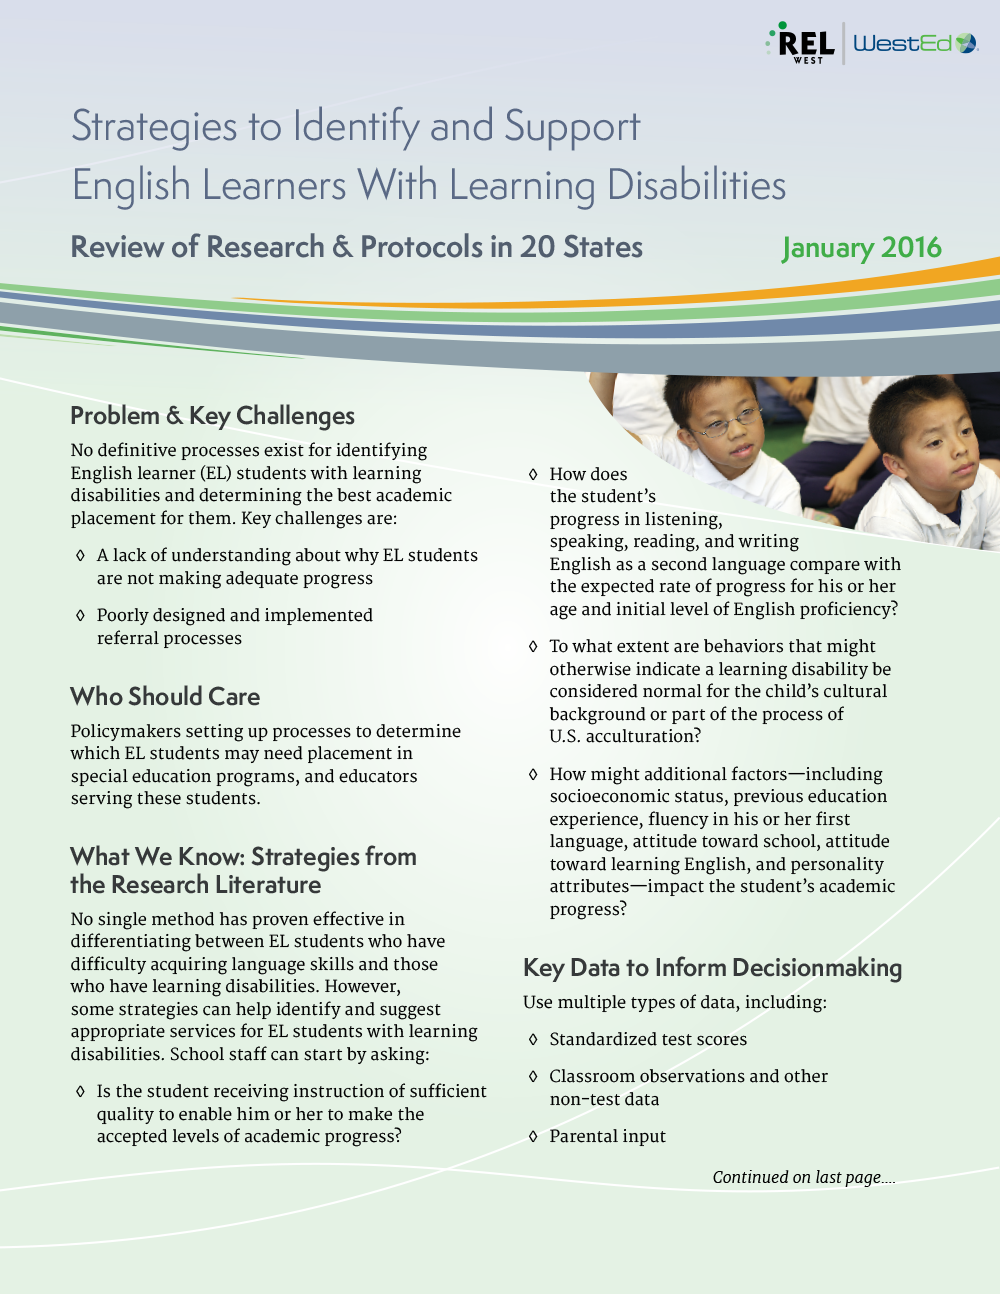 For Students With Disabilities Quality >> A Focus On English Learners Who May Have Learning Disabilities